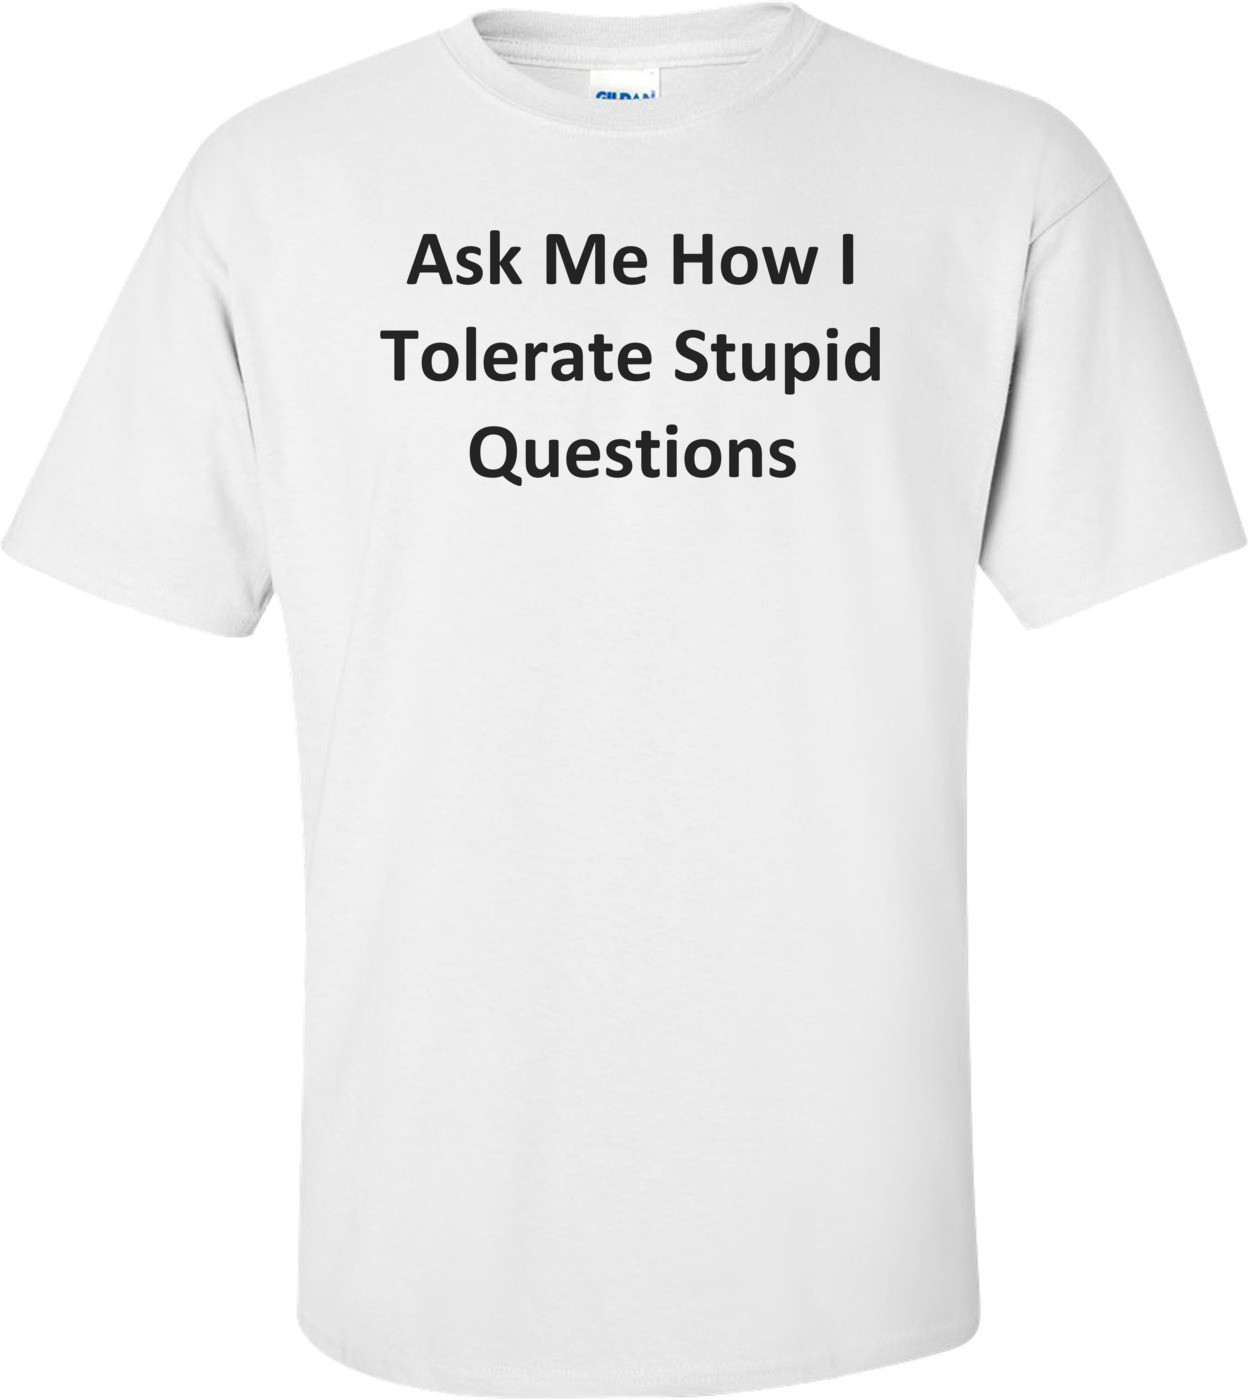 Ask Me How I Tolerate Stupid Questions T-Shirt